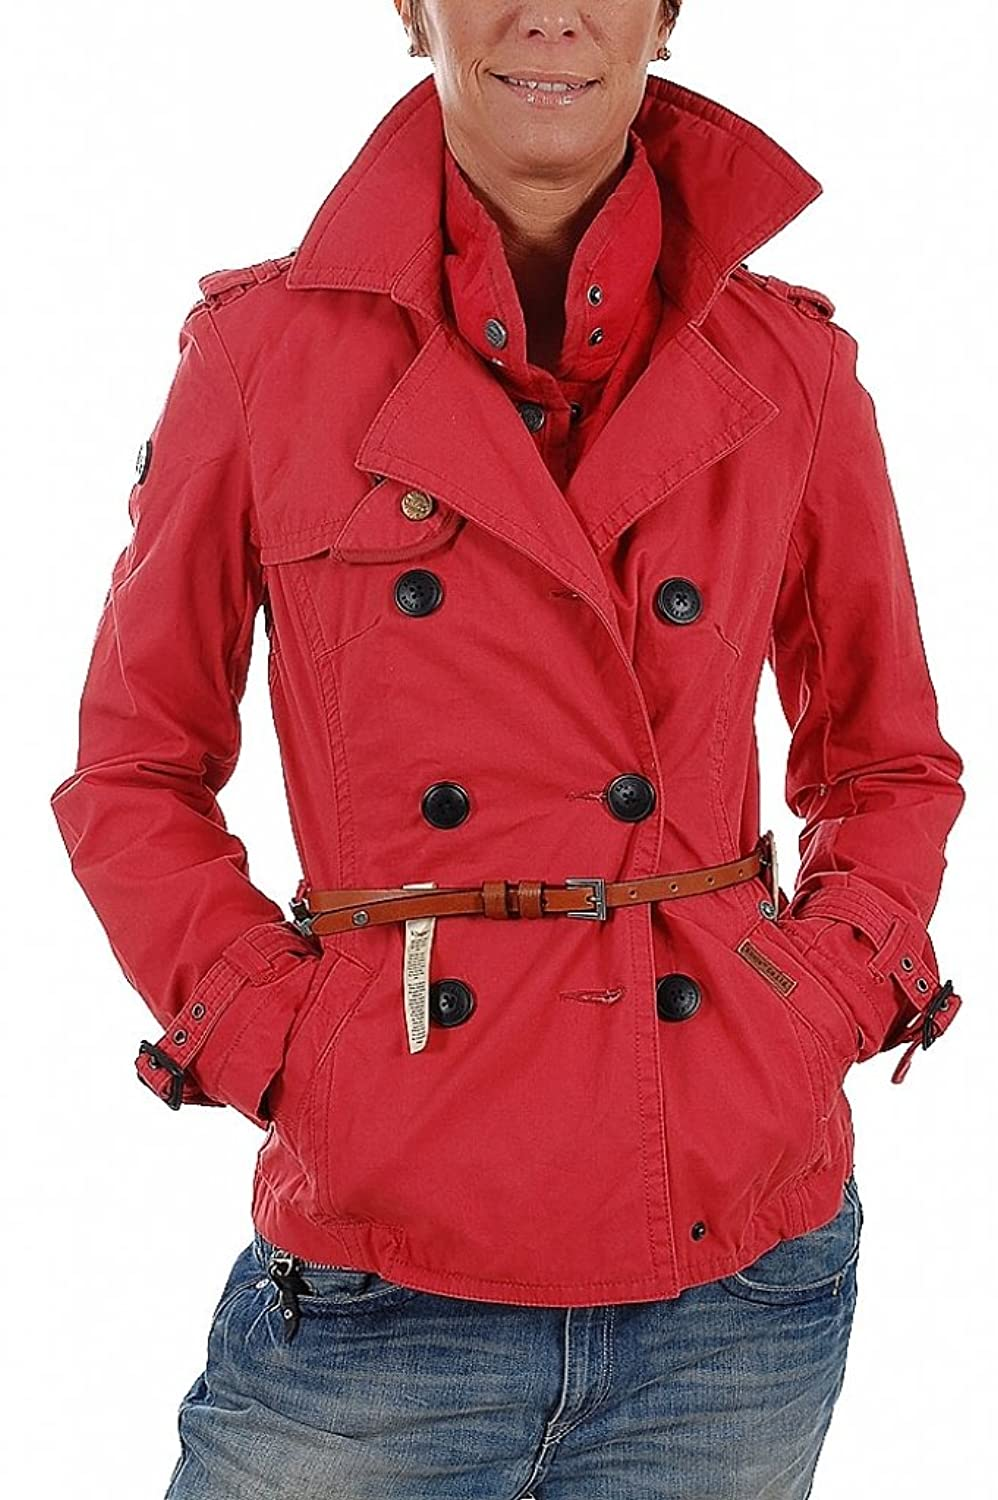 Khujo damen jacke fem with belt & ij